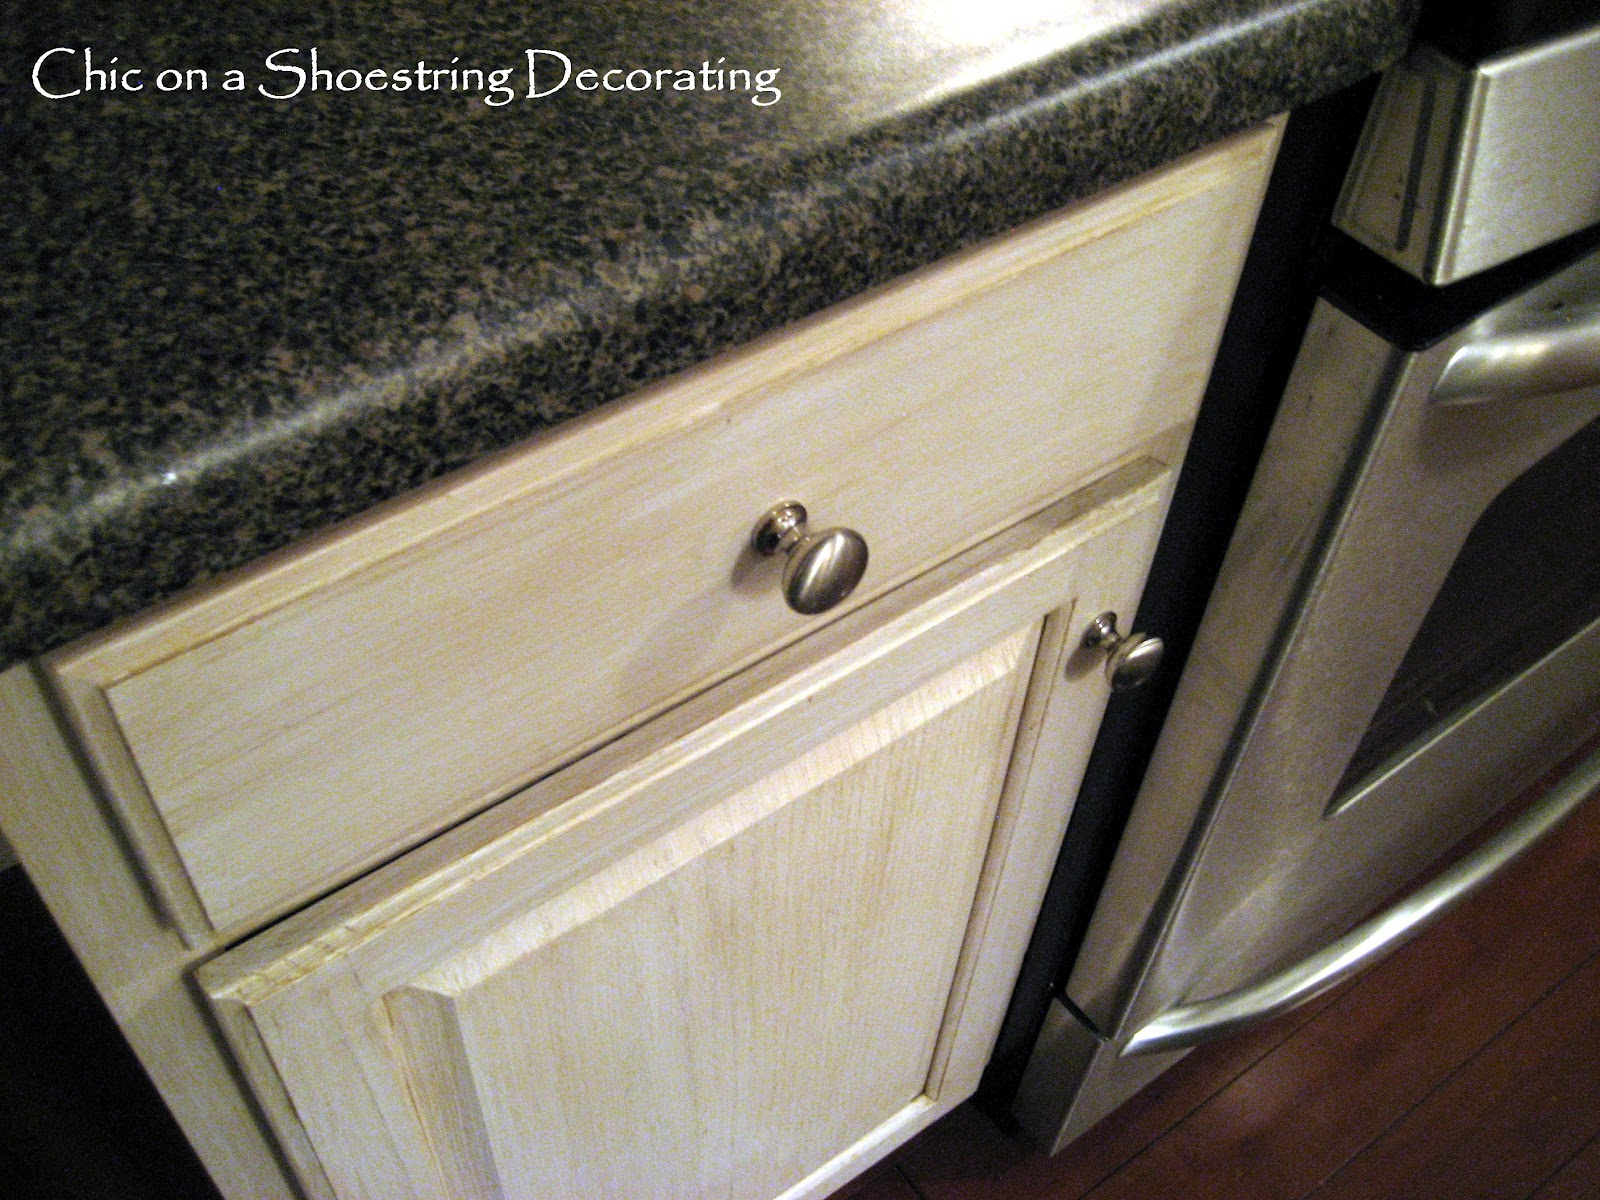 Cabinet Handles For Kitchen Small Sink Chic On A Shoestring Decorating How To Change Your